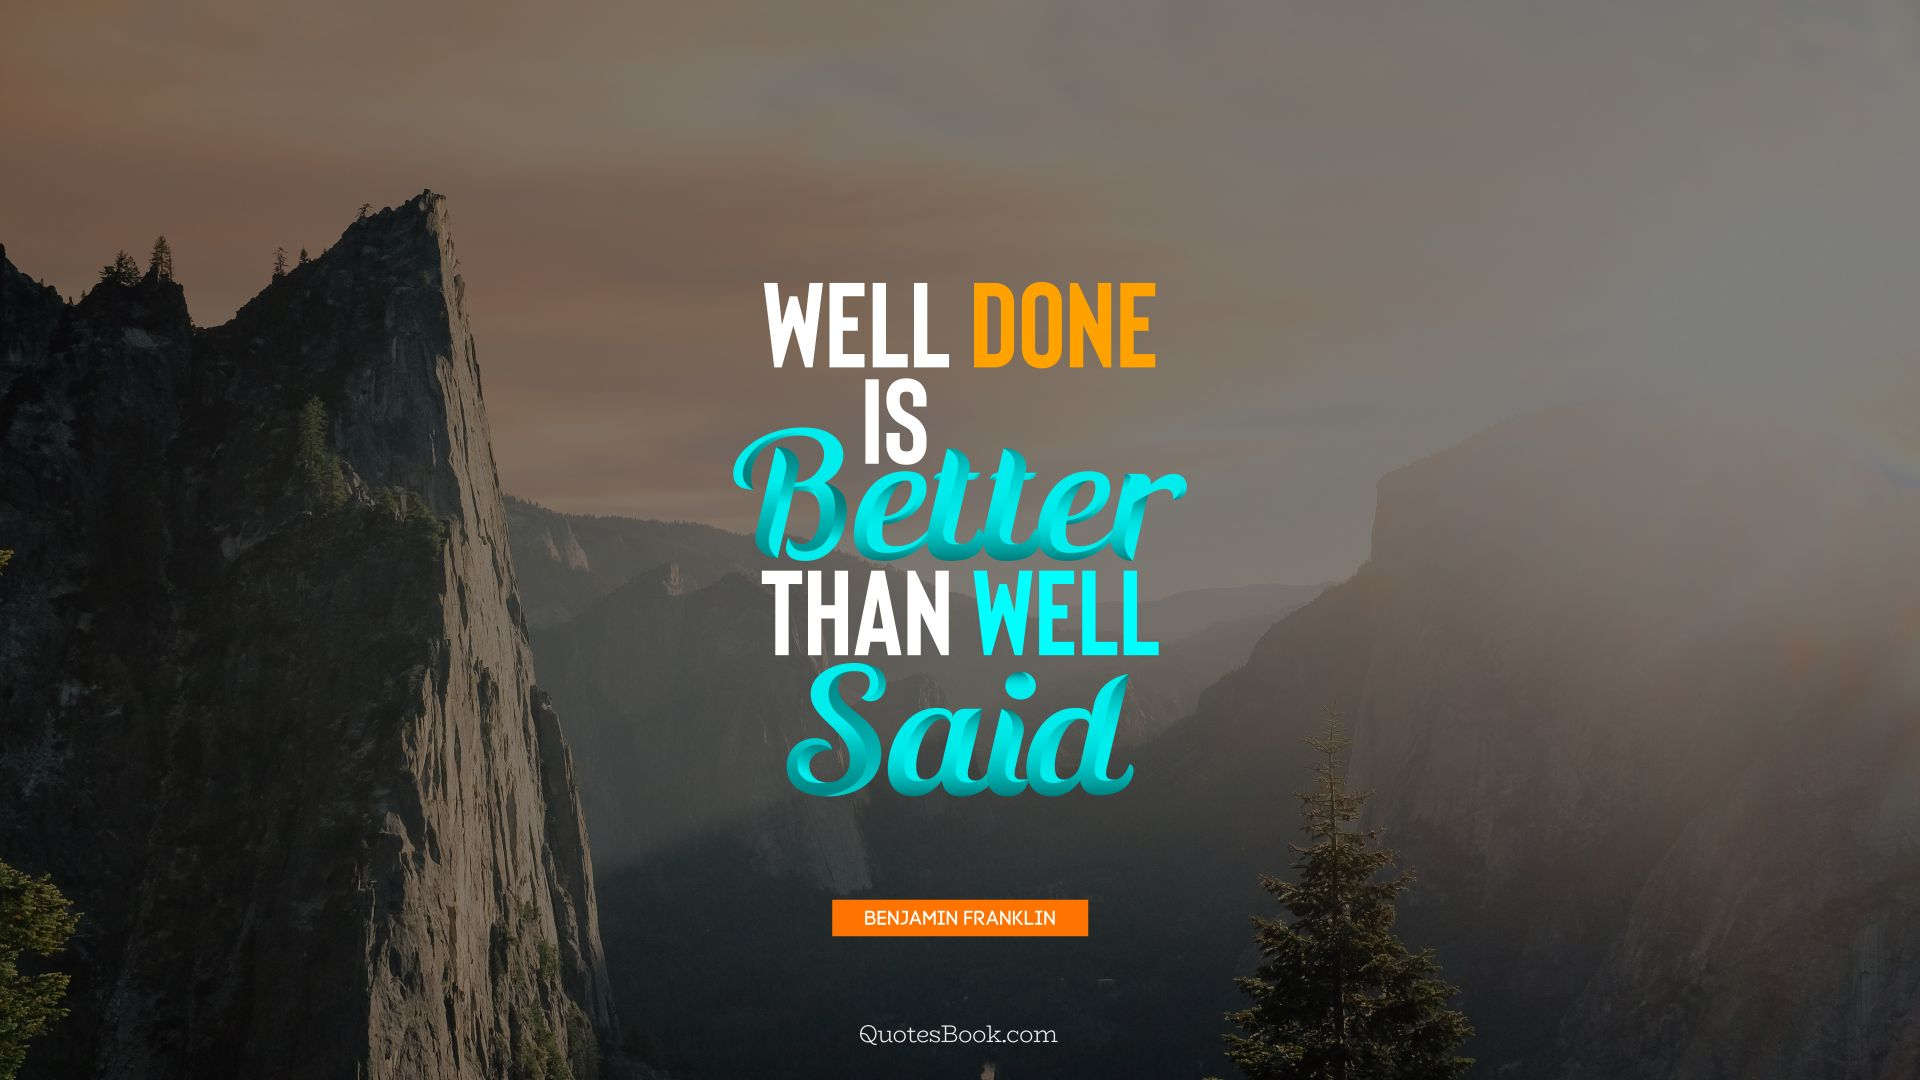 Well done is better than well said. - Quote by Benjamin Franklin